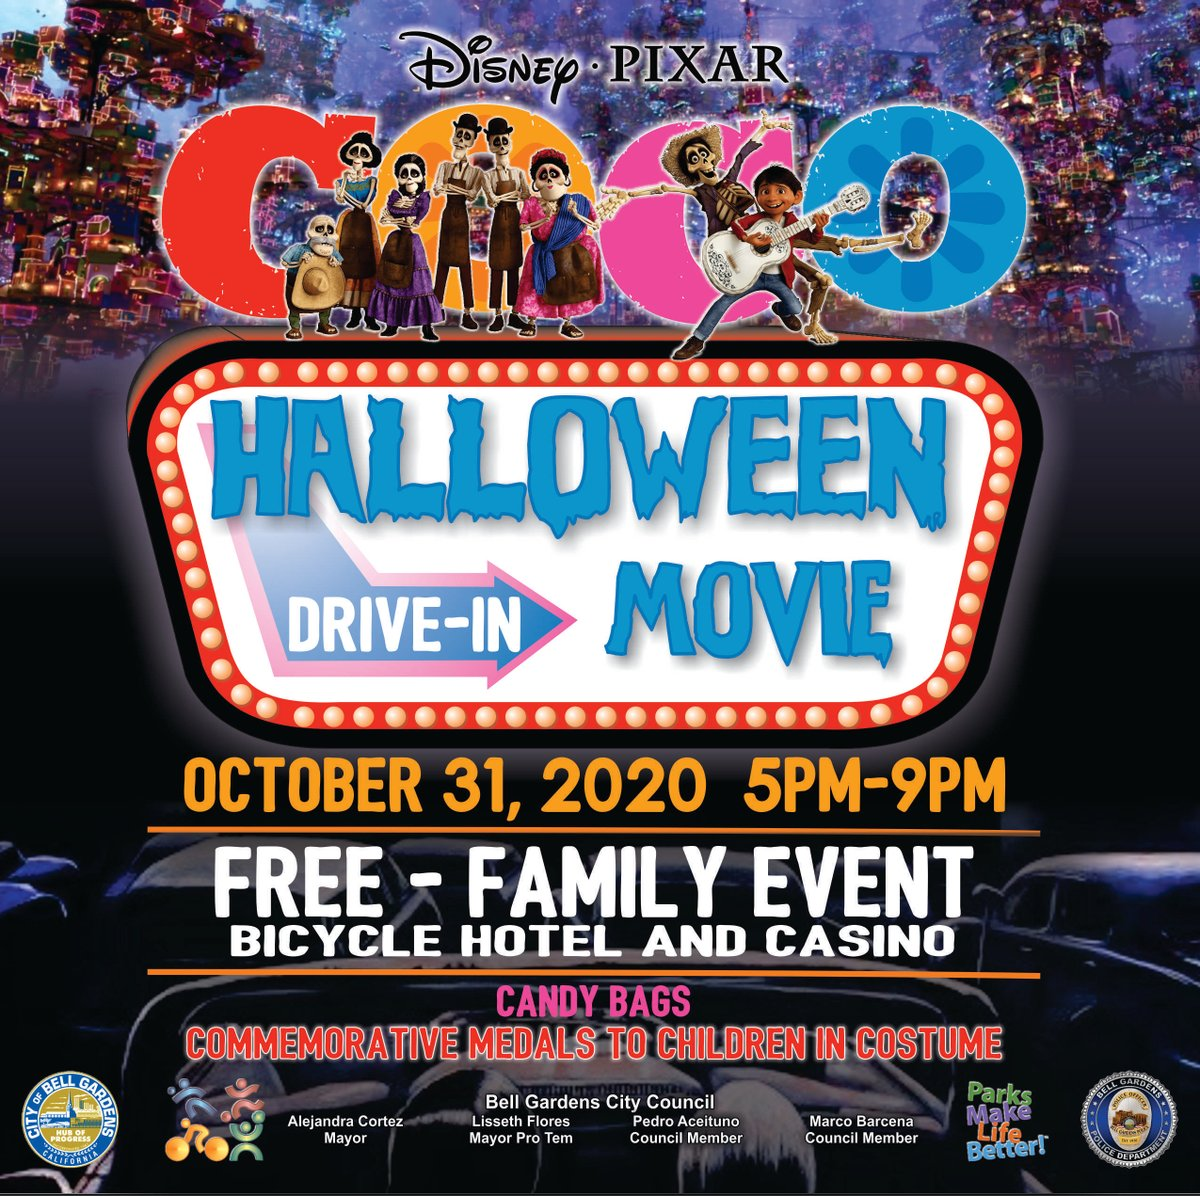 Join us Saturday, October 31 for our Halloween Drive-In Movie at the Bicycle Hotel and Casino Parking Lot!   #trickortreat #pumpkin #spooky #happyhalloween #costume #BG #BellGardens #BGSafe #BGStrong https://t.co/czrP9Fsk1x